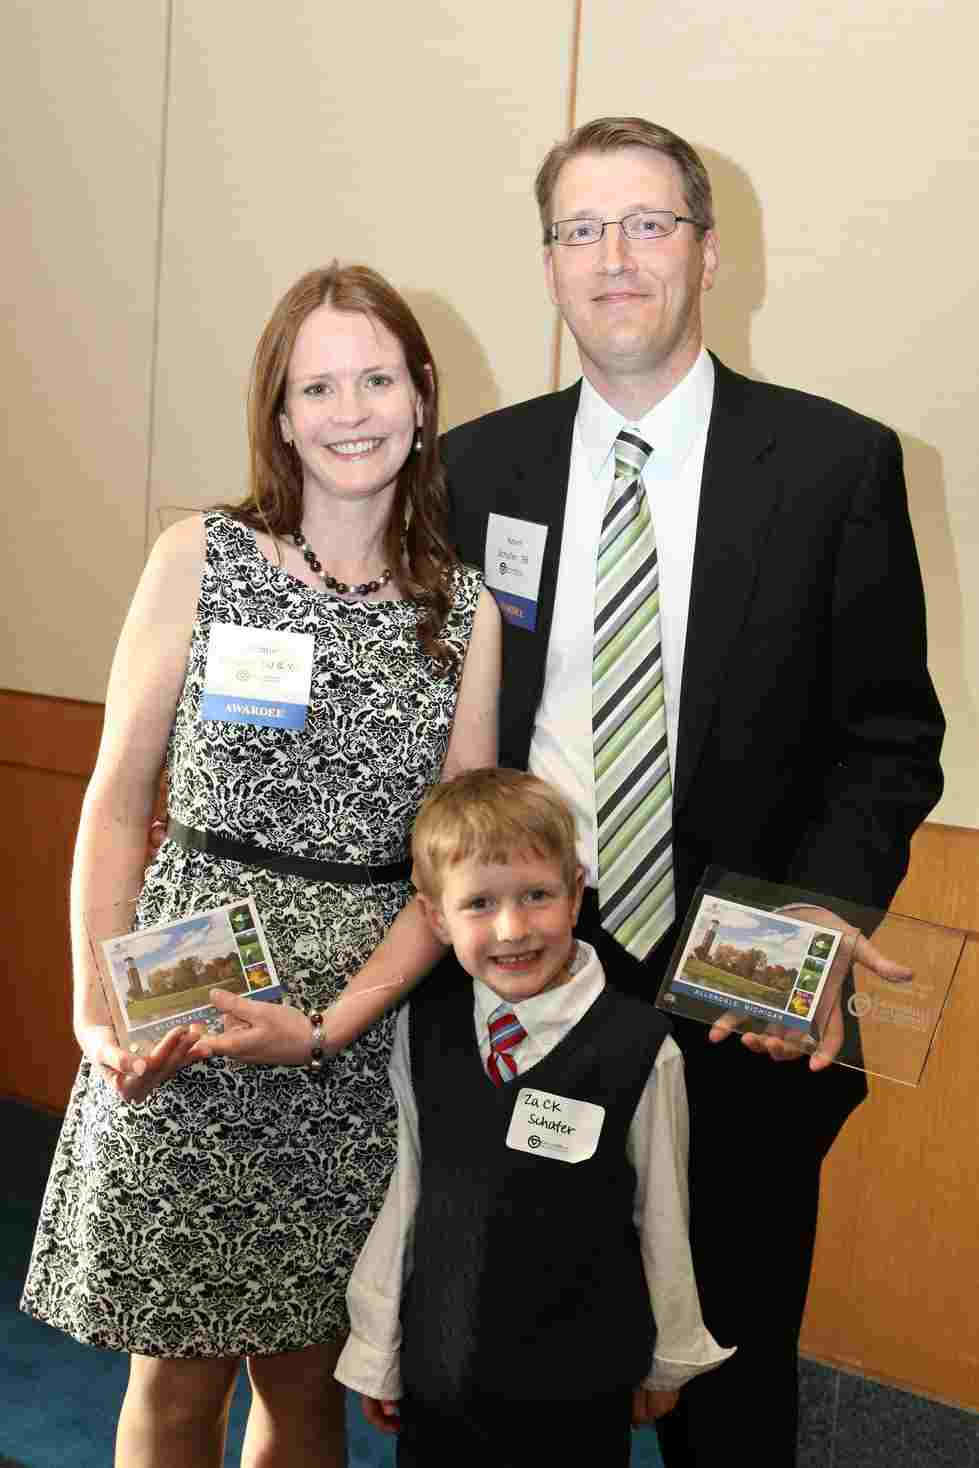 Alumni Service Award recipients Kevin, 98, and Jacqueline, 00 & 05, Schafer are pictured with their son, Zack.